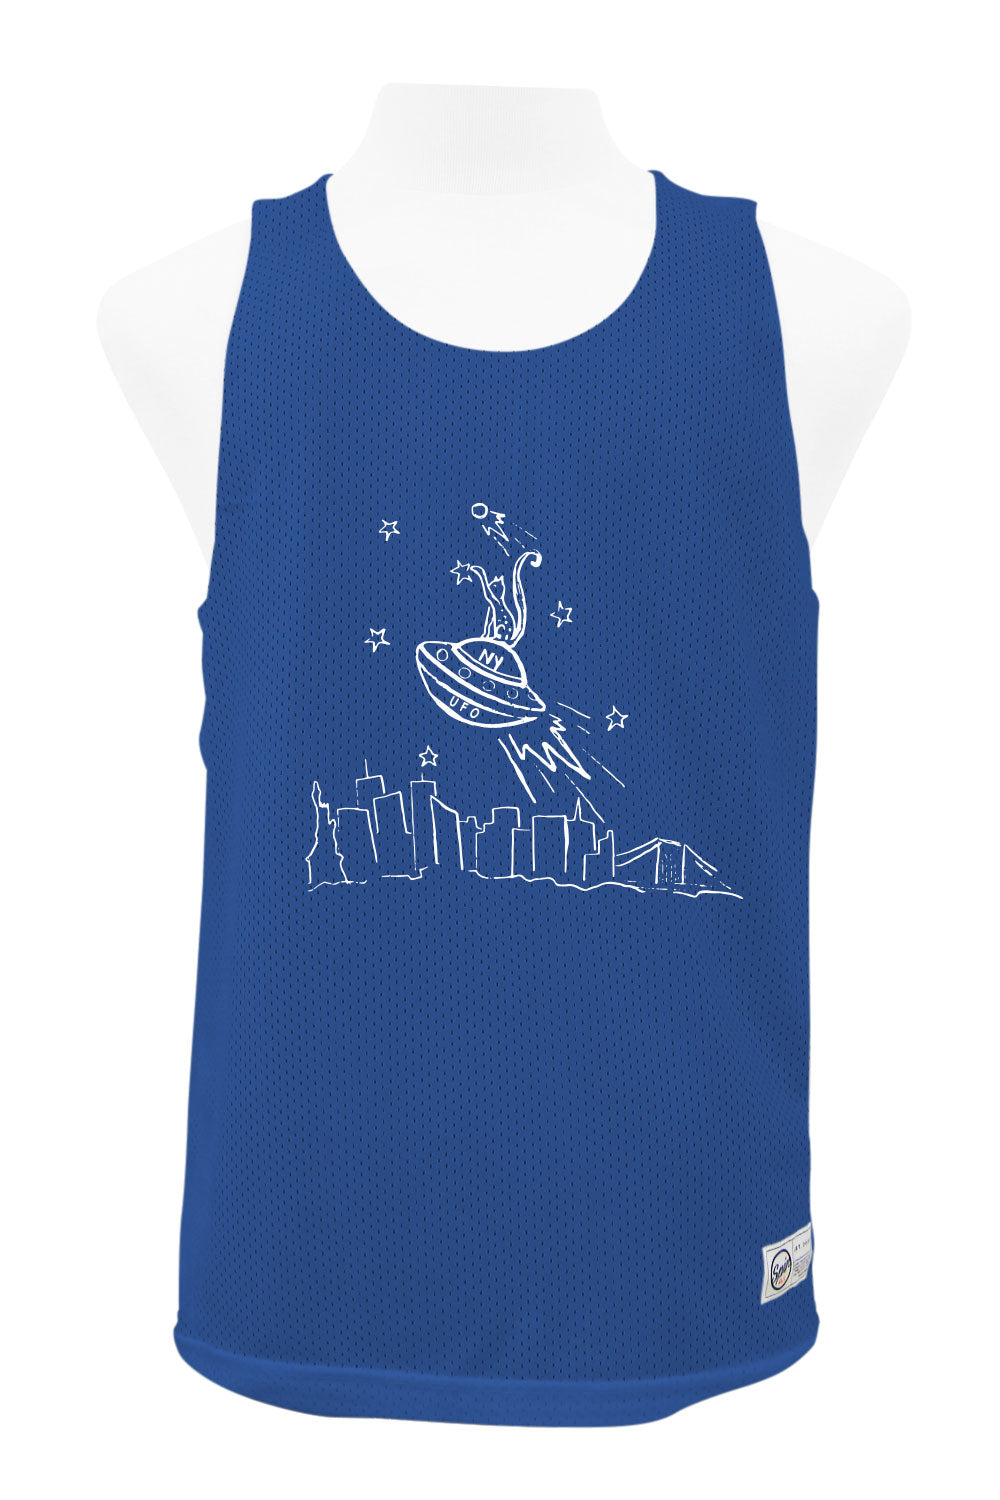 UFO Reversible Tank (Royal/White)